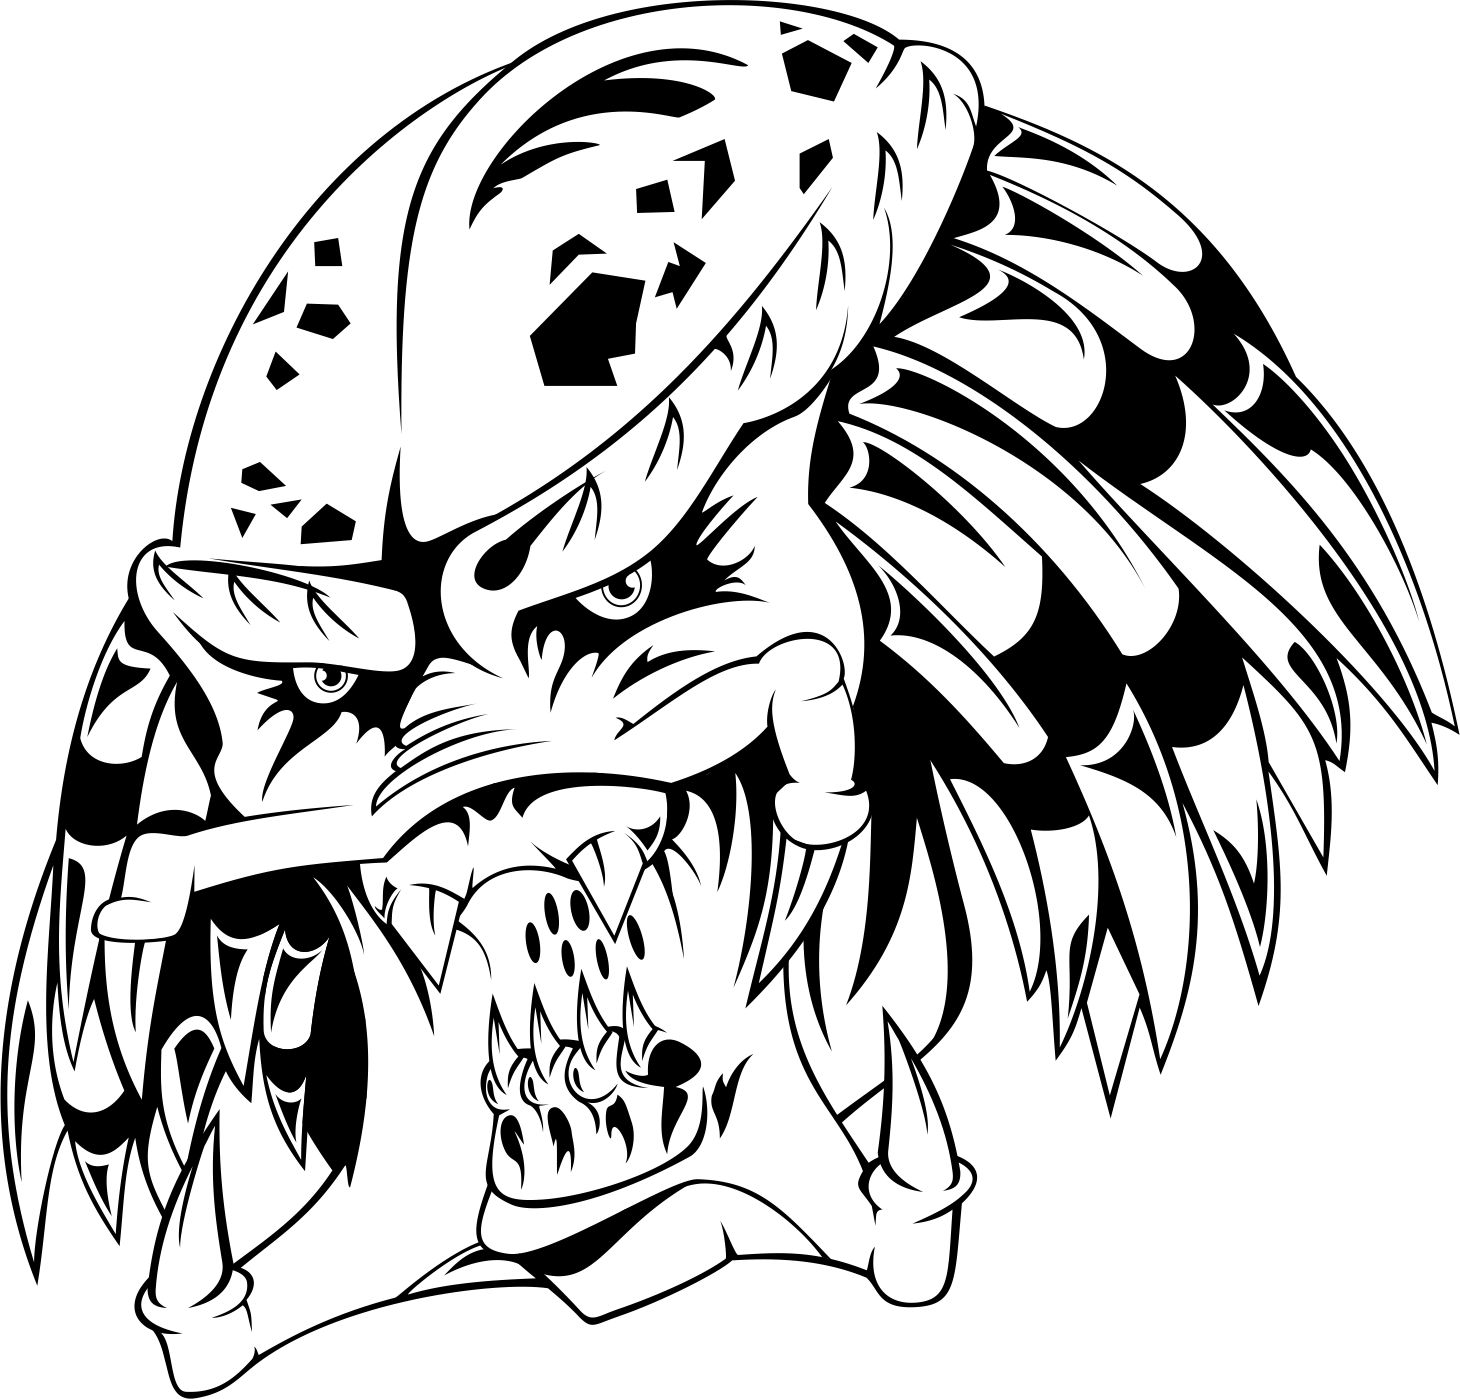 1460x1399 collection of free predator drawing logo download on ubisafe